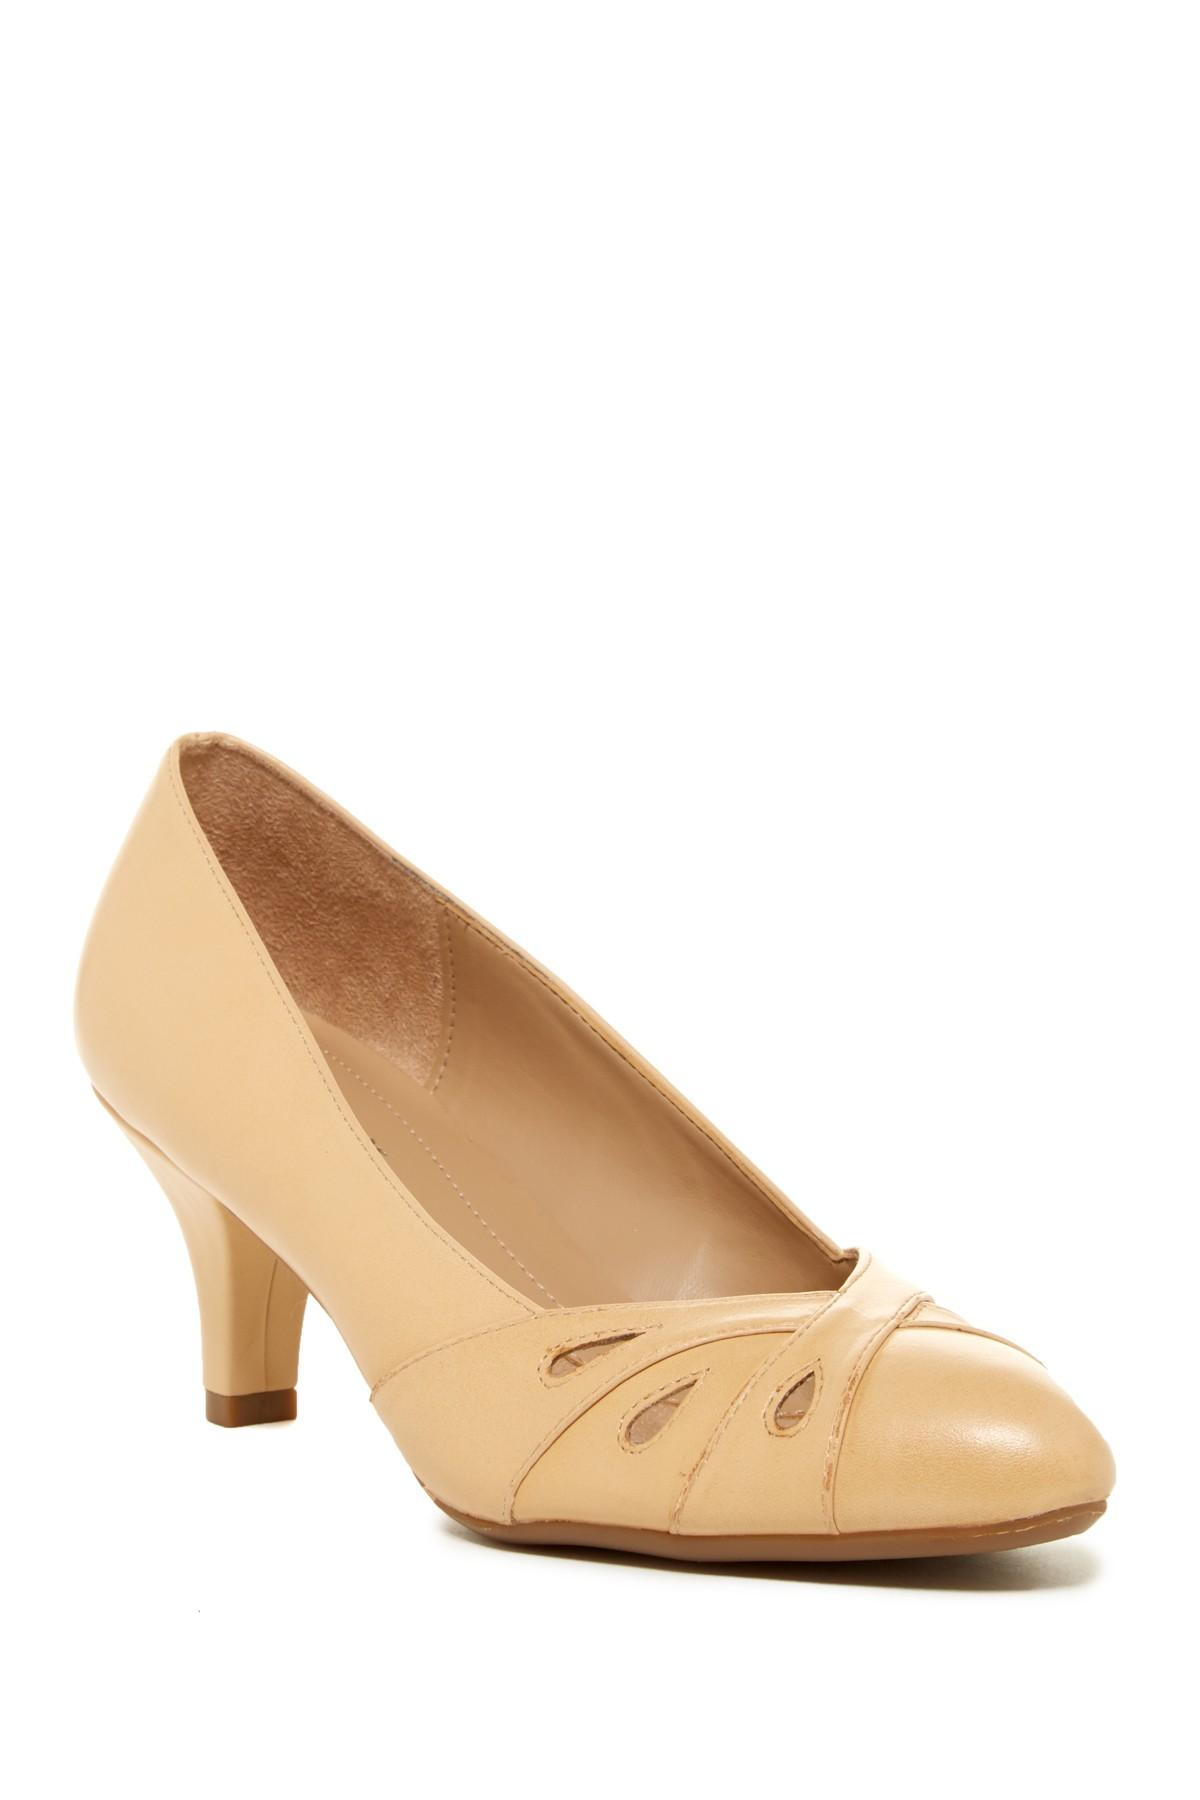 Where To Buy Womens Wide Width Shoes